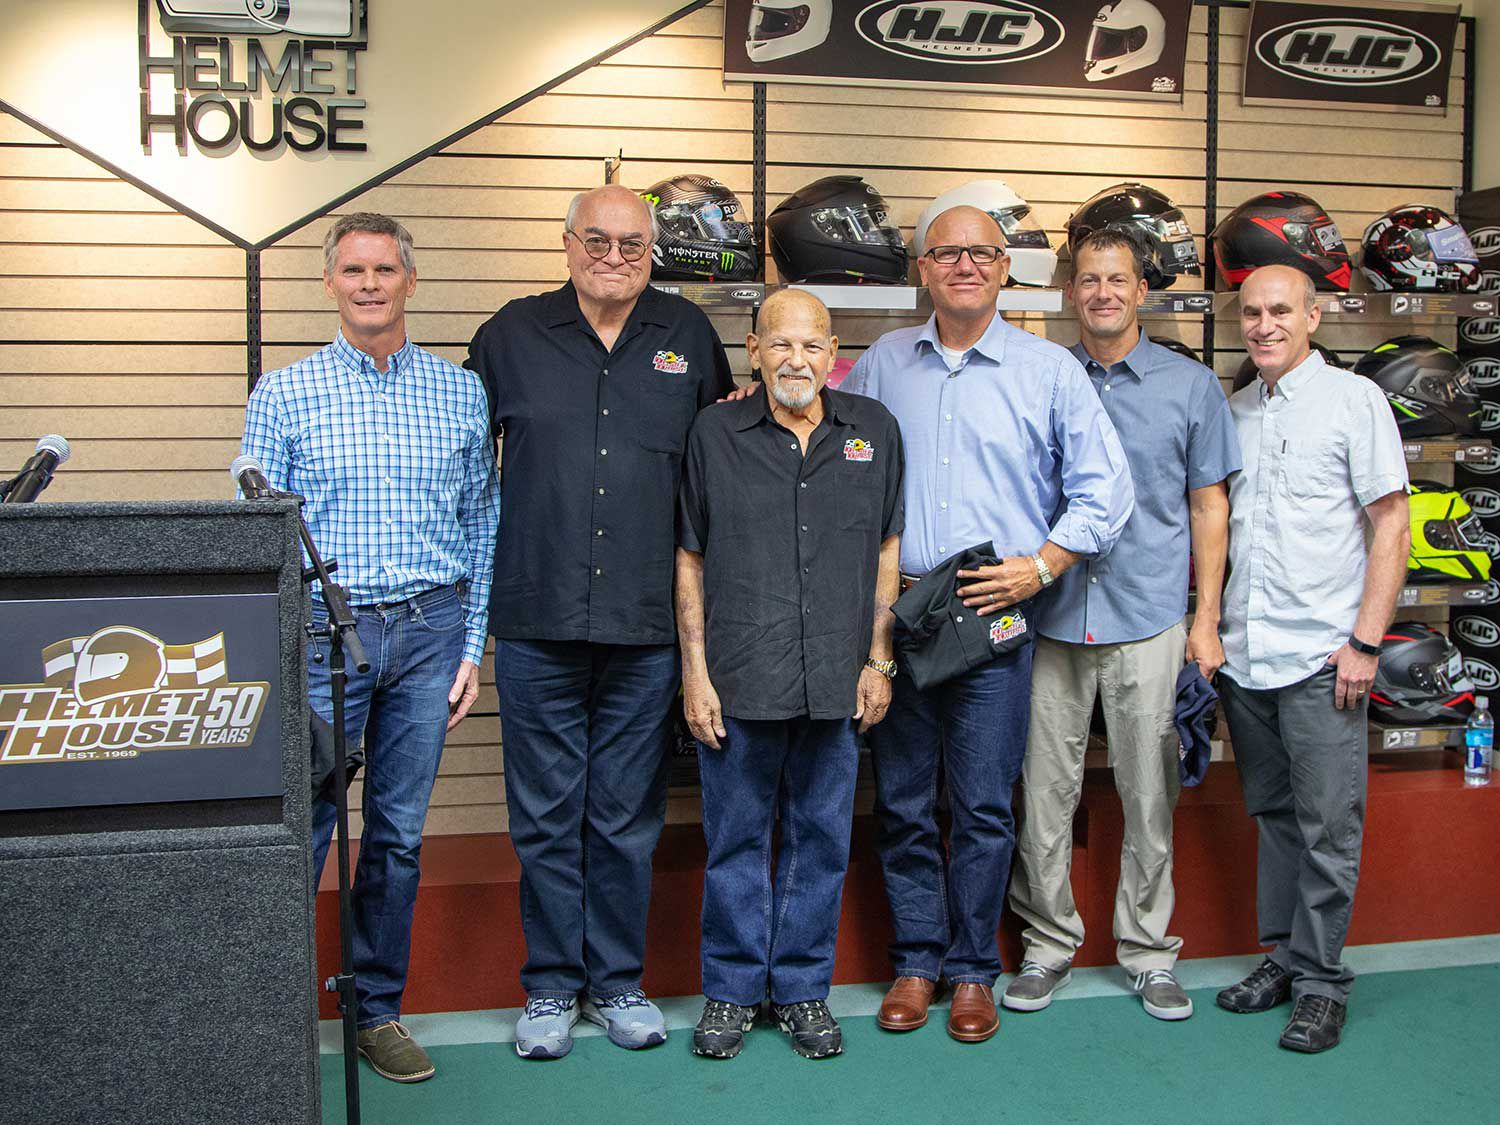 Helmet House founders Bob Miller and Phil Bellomy are joined by the new ownership group consisting of Dave Bertram, Scott Link, Don Becklin, and Randy Hutchings.